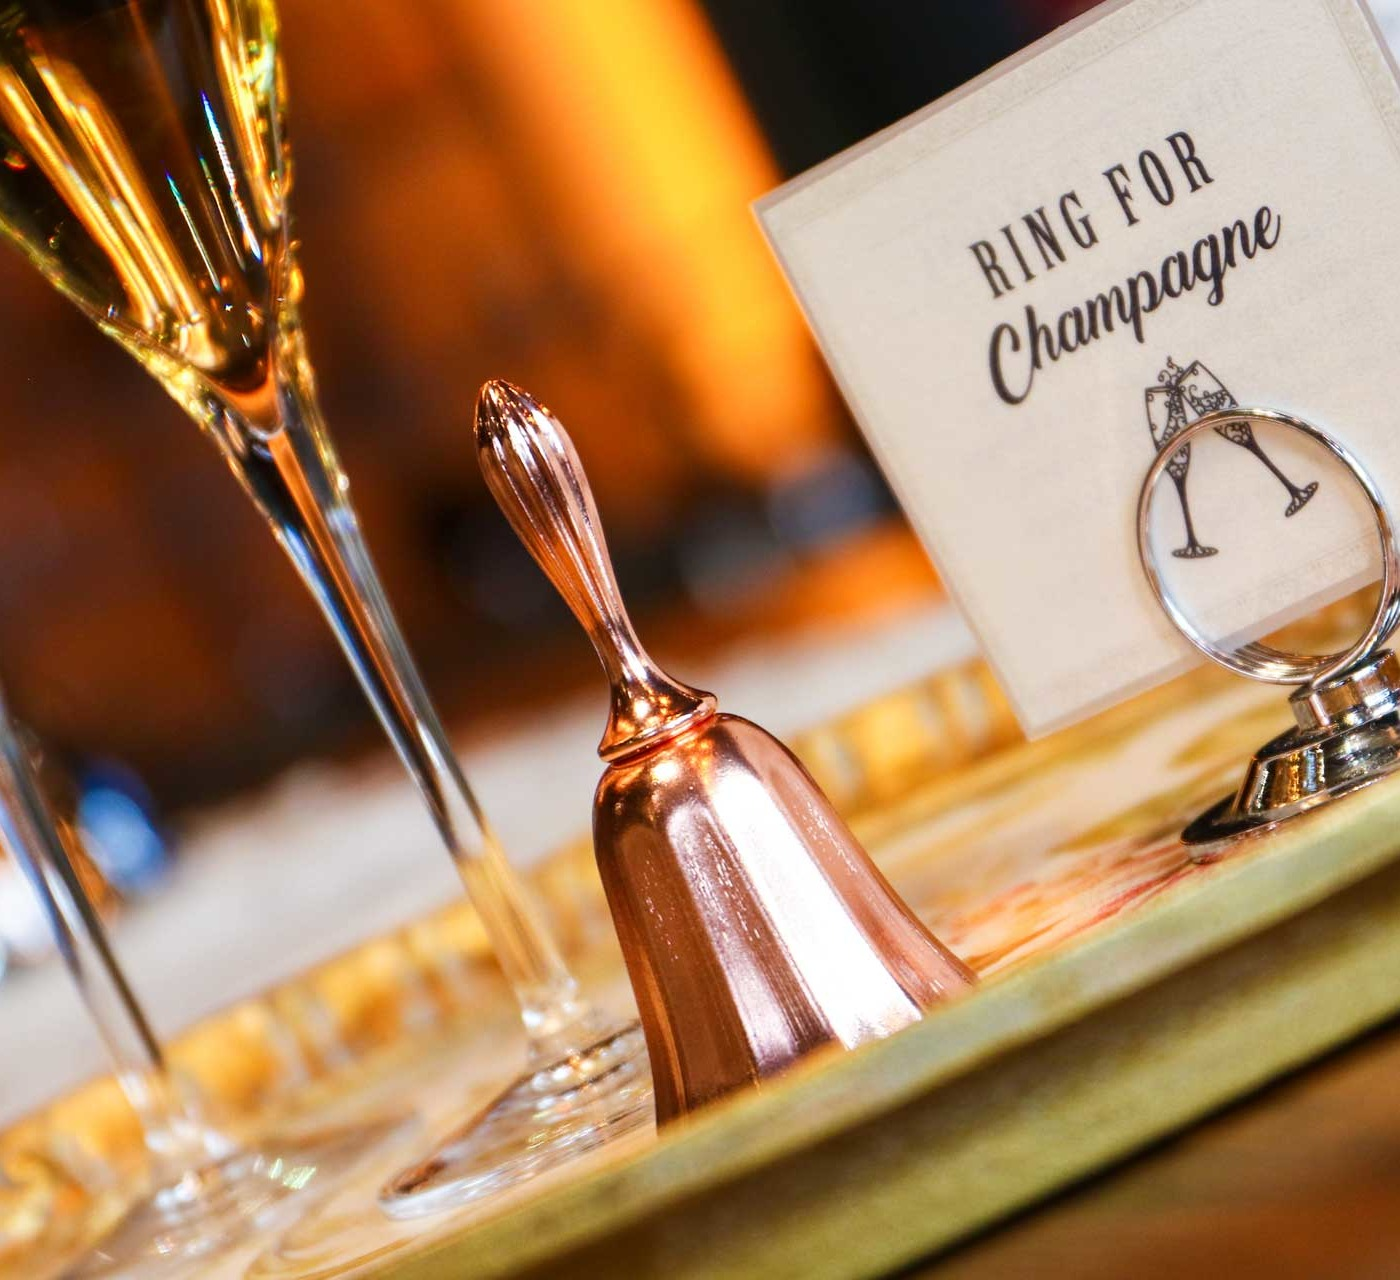 brunch-carlton-belleepoque-champagner